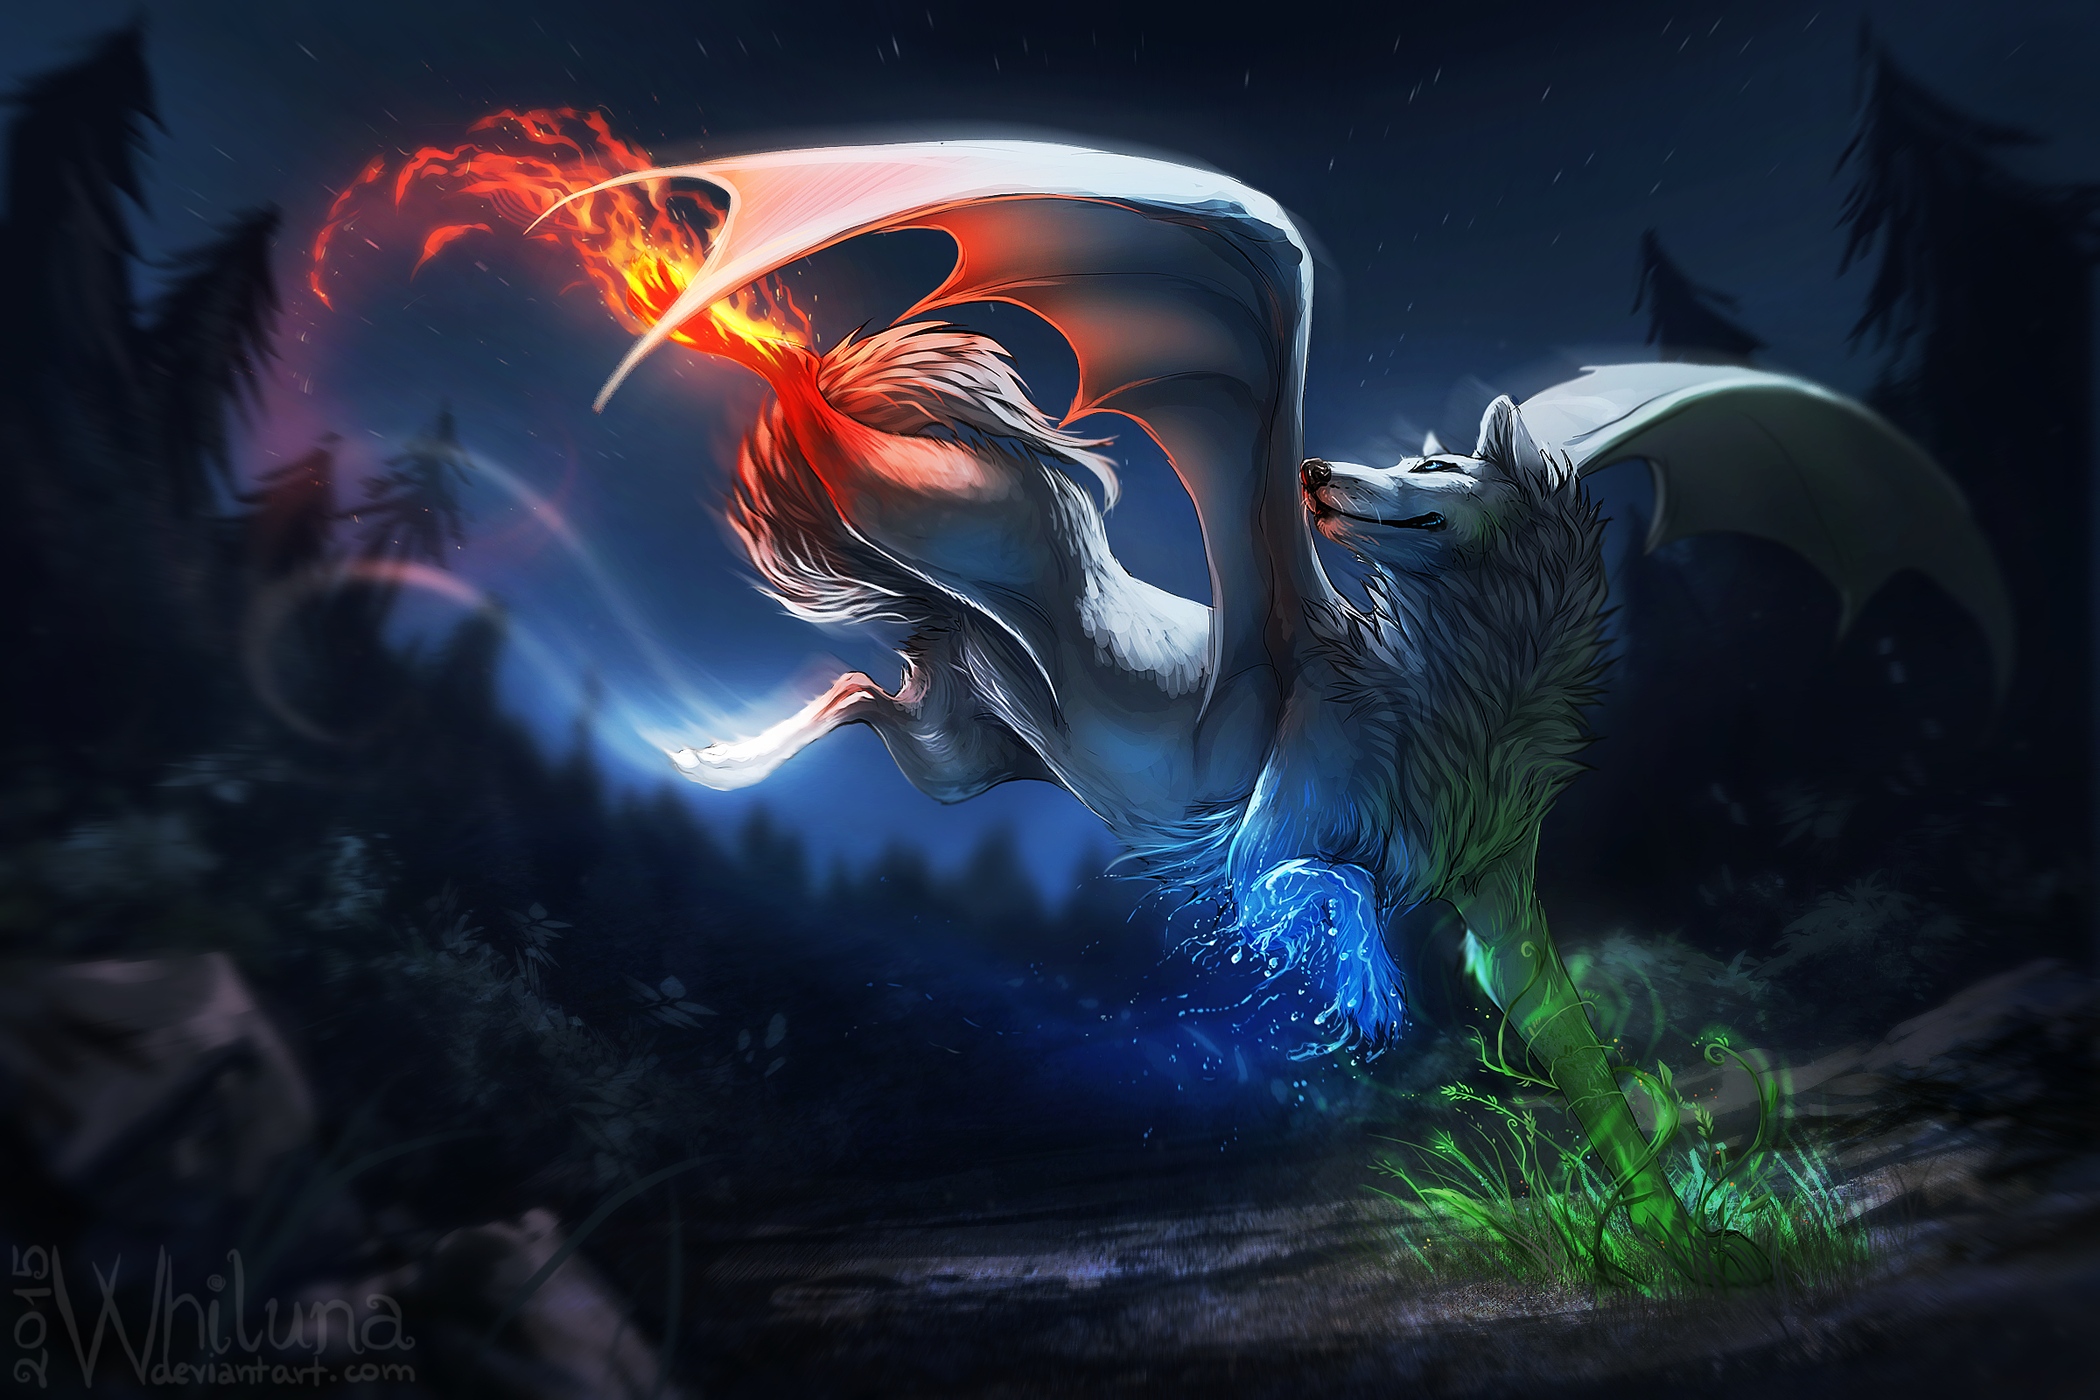 The Four Elements In A Wolf Full HD Wallpaper And Background Image